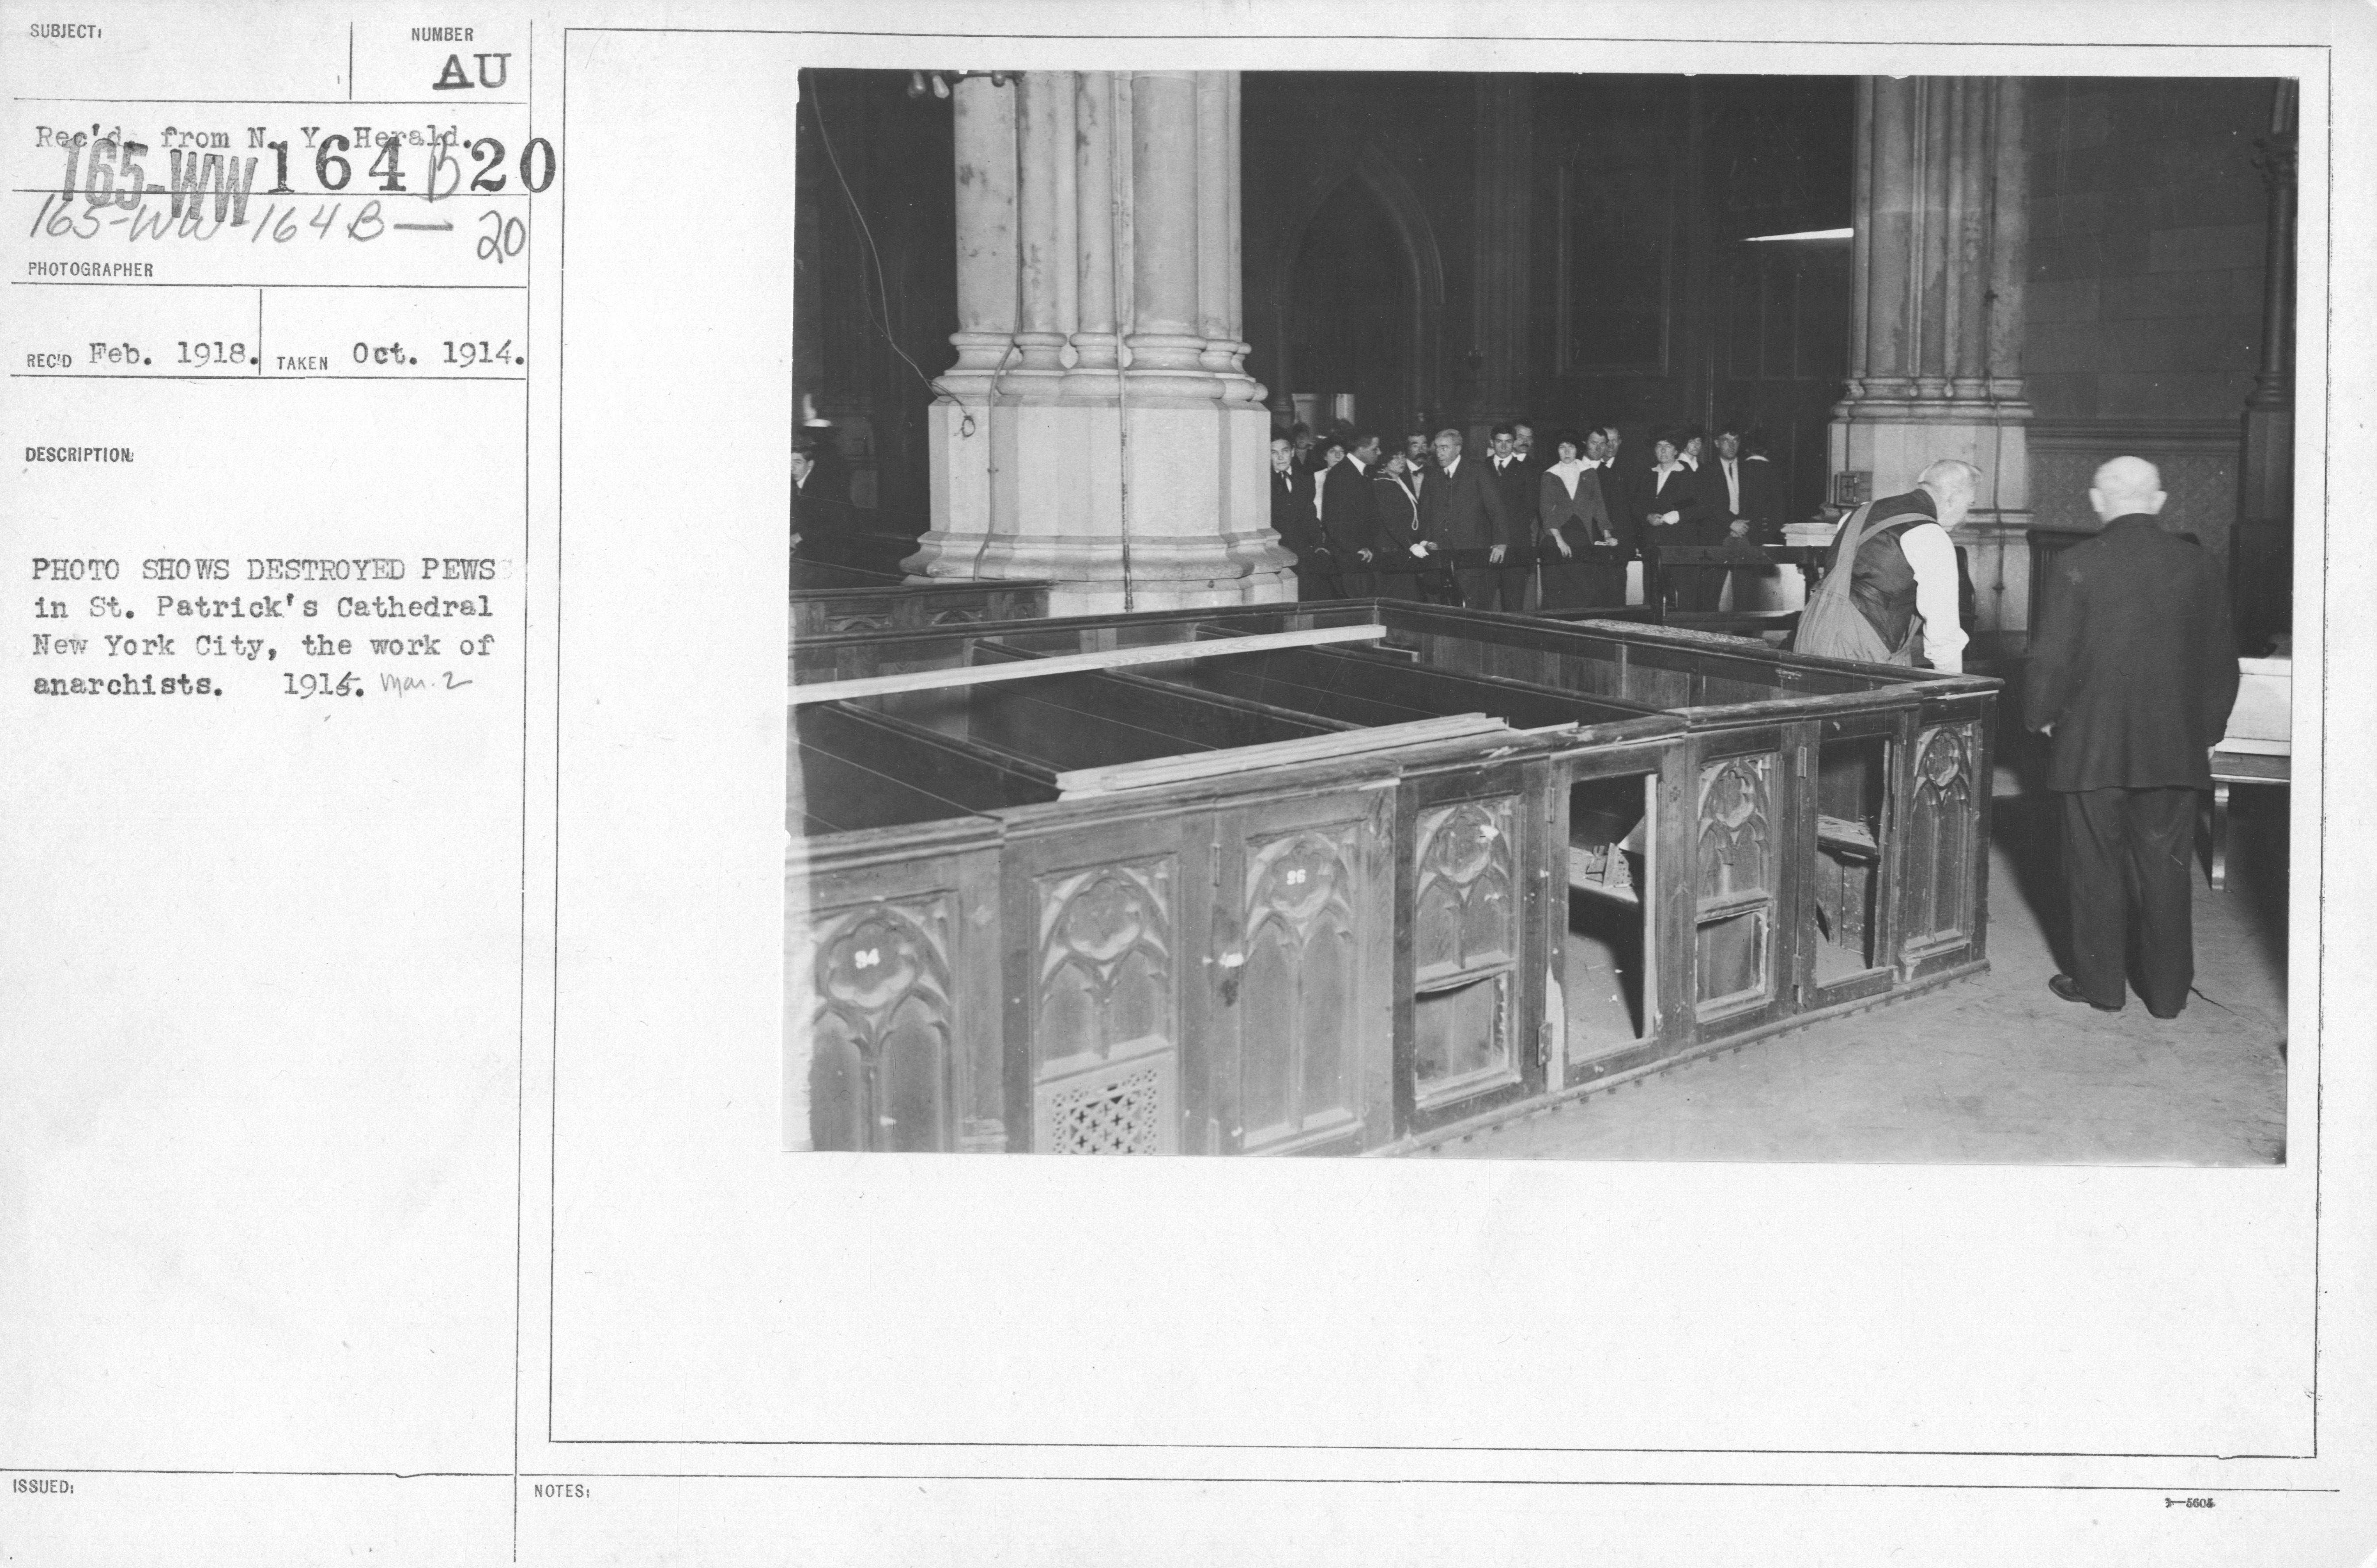 Photo Shows Destroyed Pews in St. Patrick's Cathedral